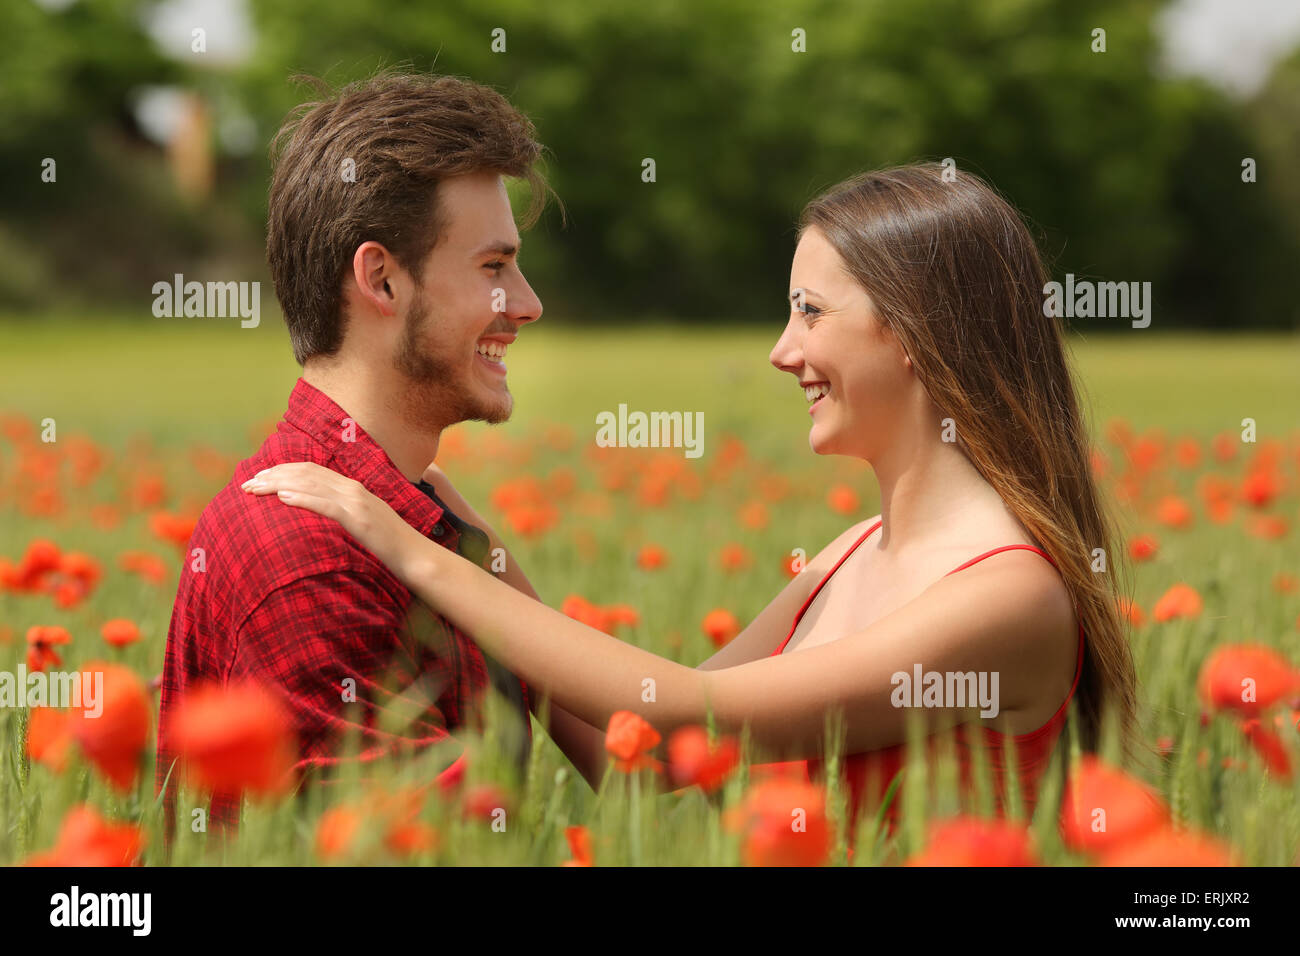 Happy couple looking each other affectionate in a field with red poppy flowers Stock Photo